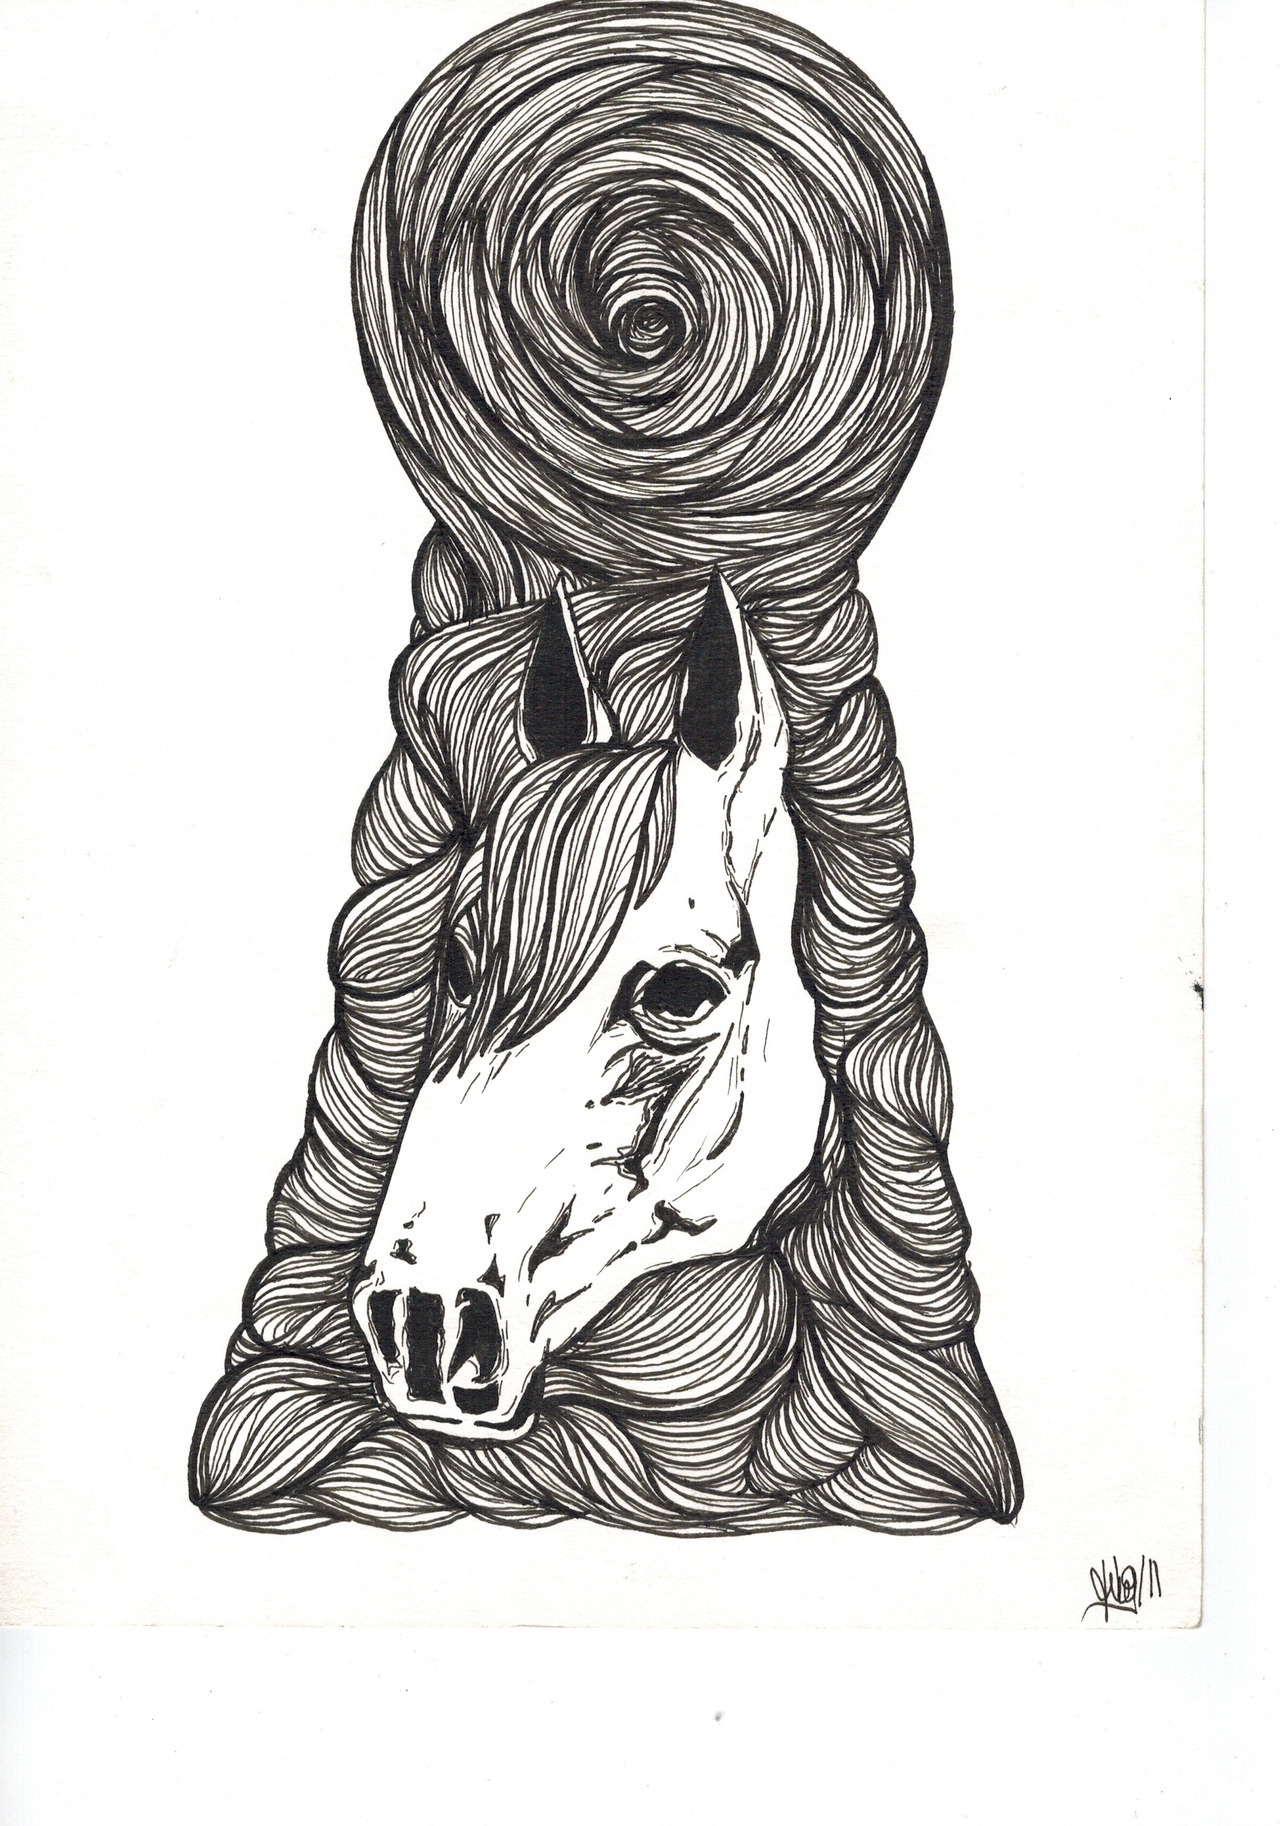 """Inside me"", ink on paper, 2011."